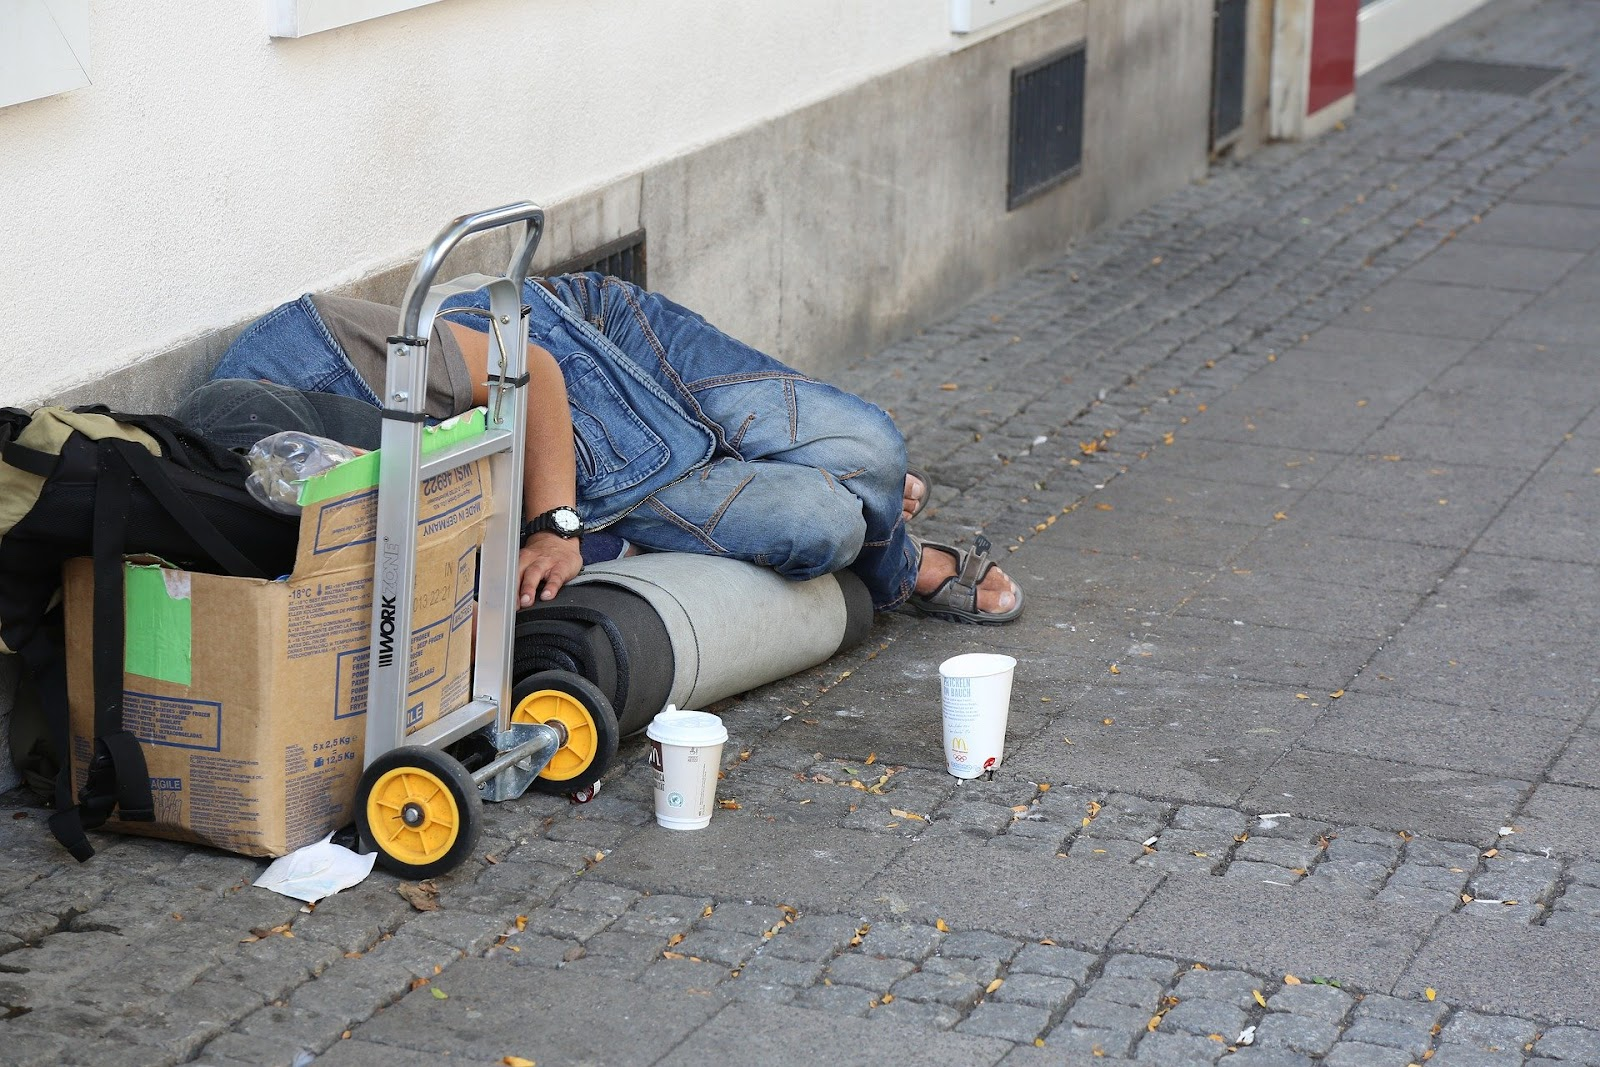 A homeless individual sleeps on a sidewalk with a box and empty cups.